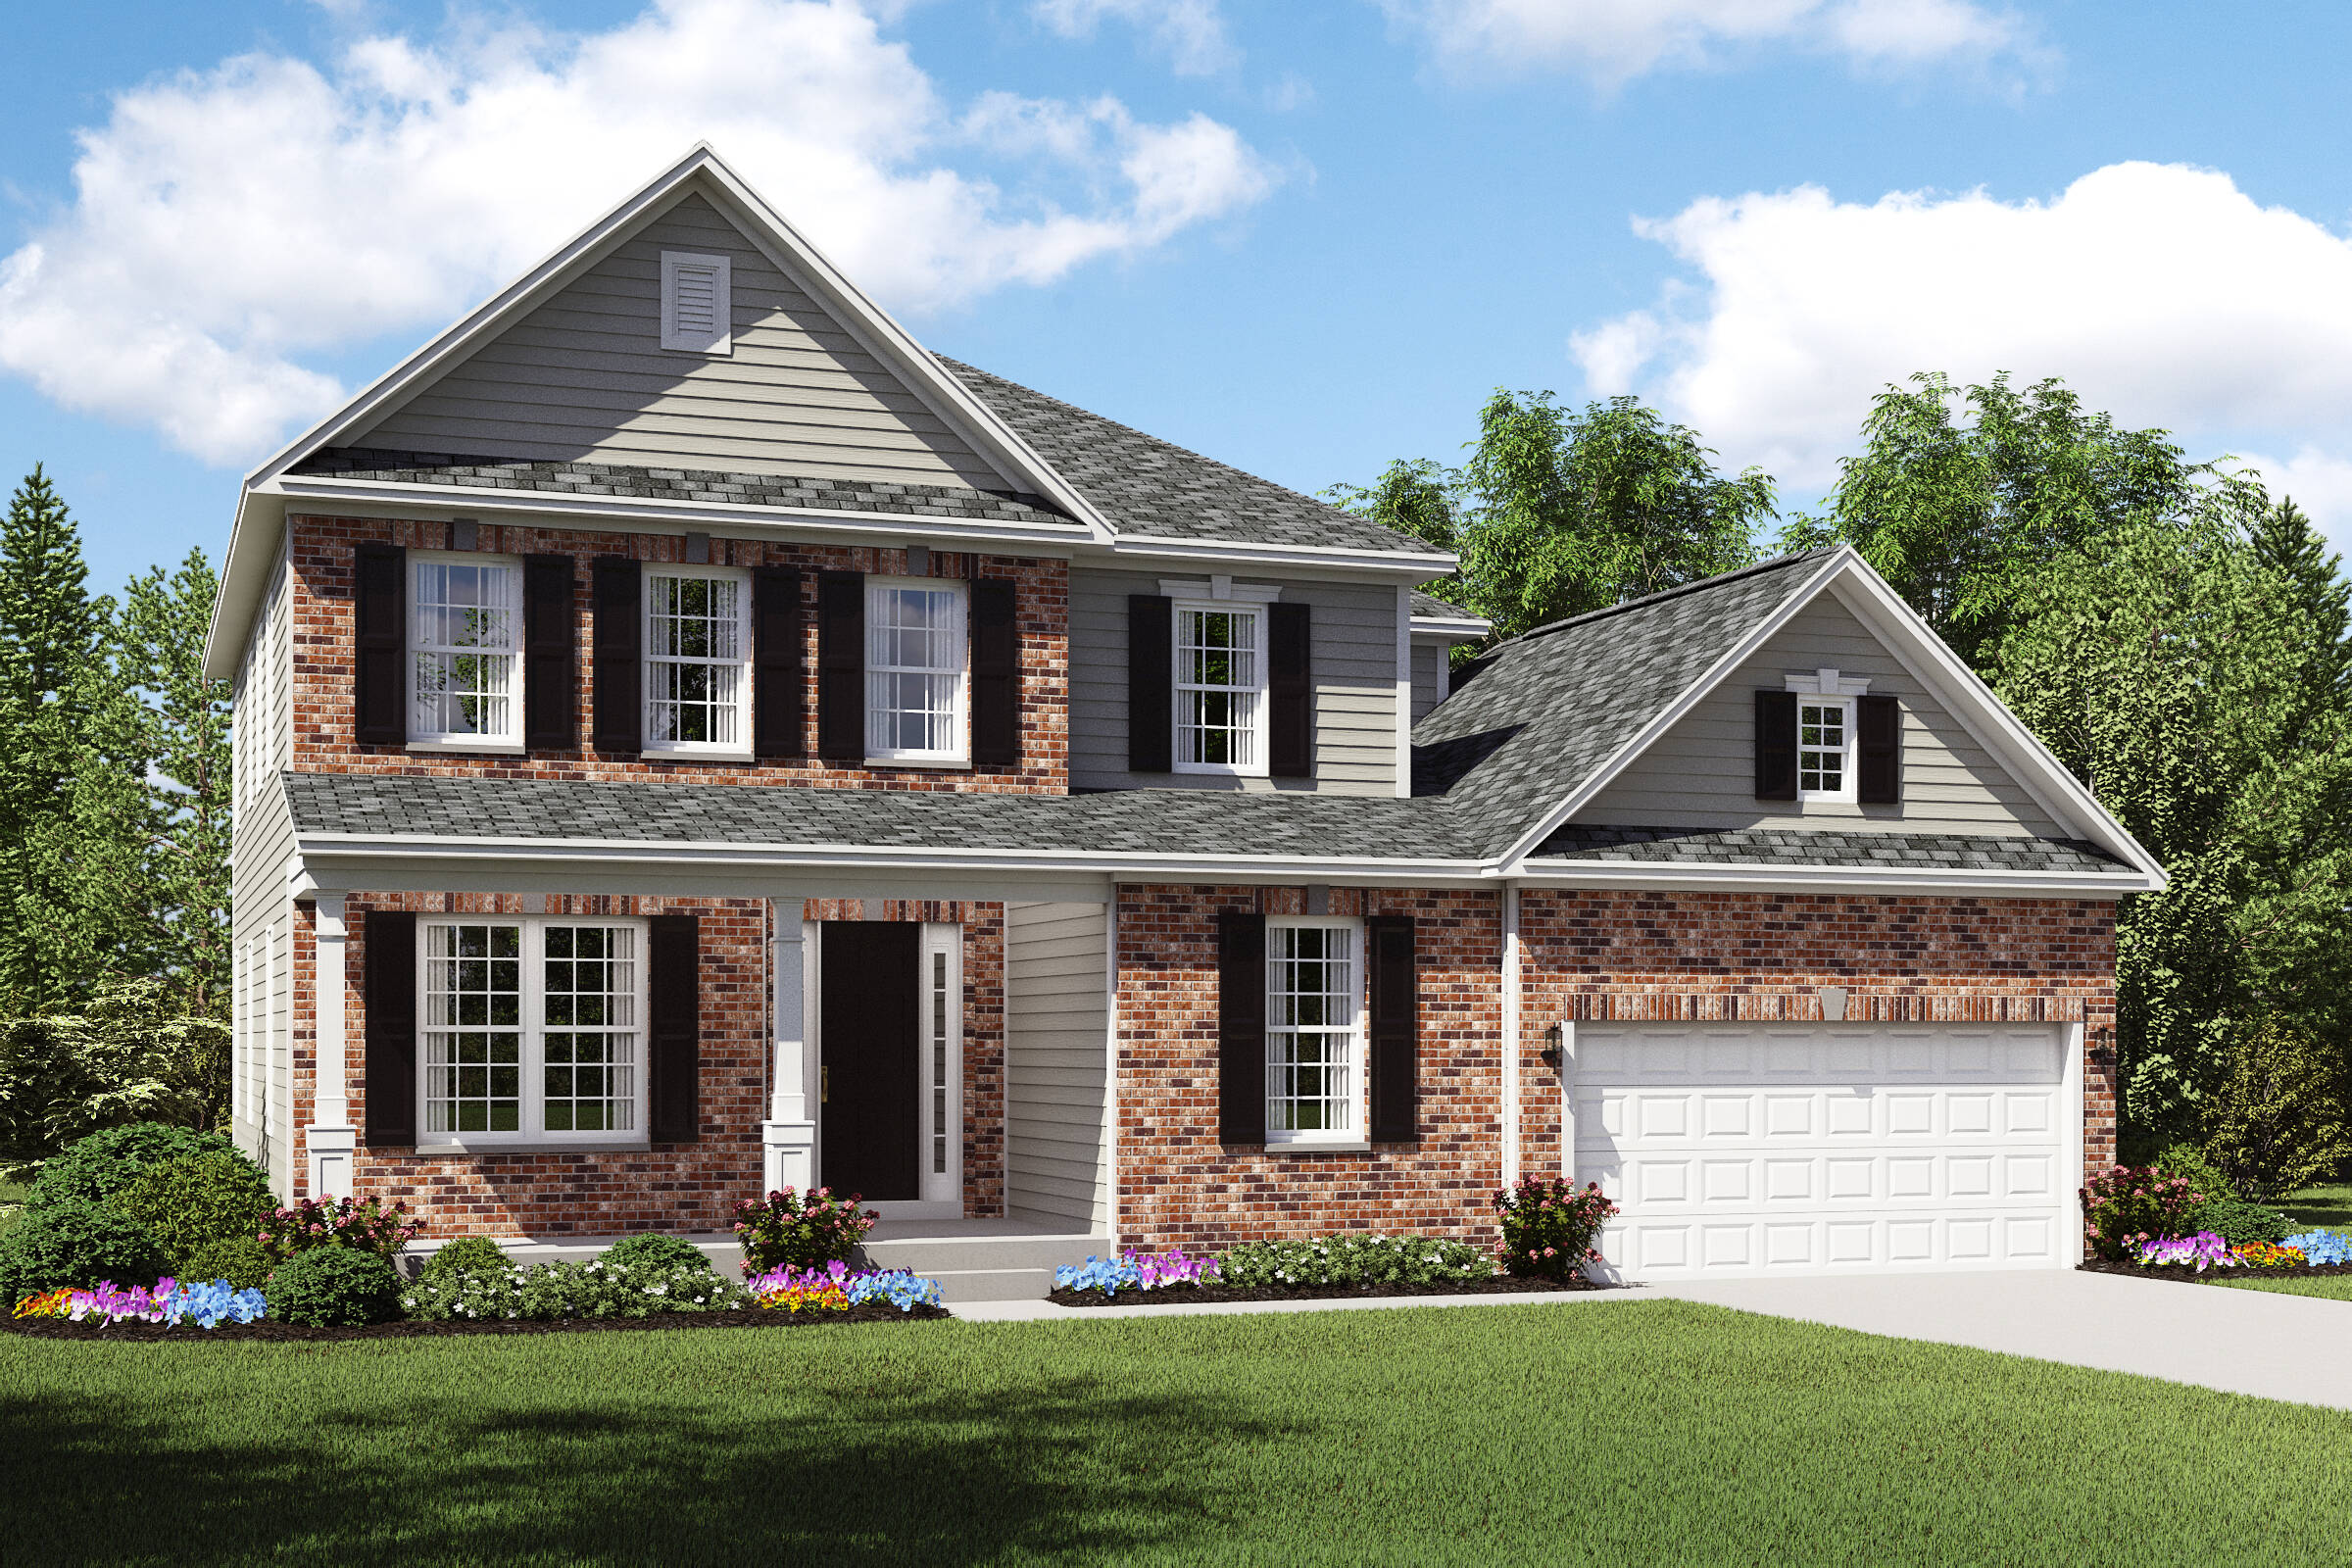 hopewell hb northeast ohio new homes for sale